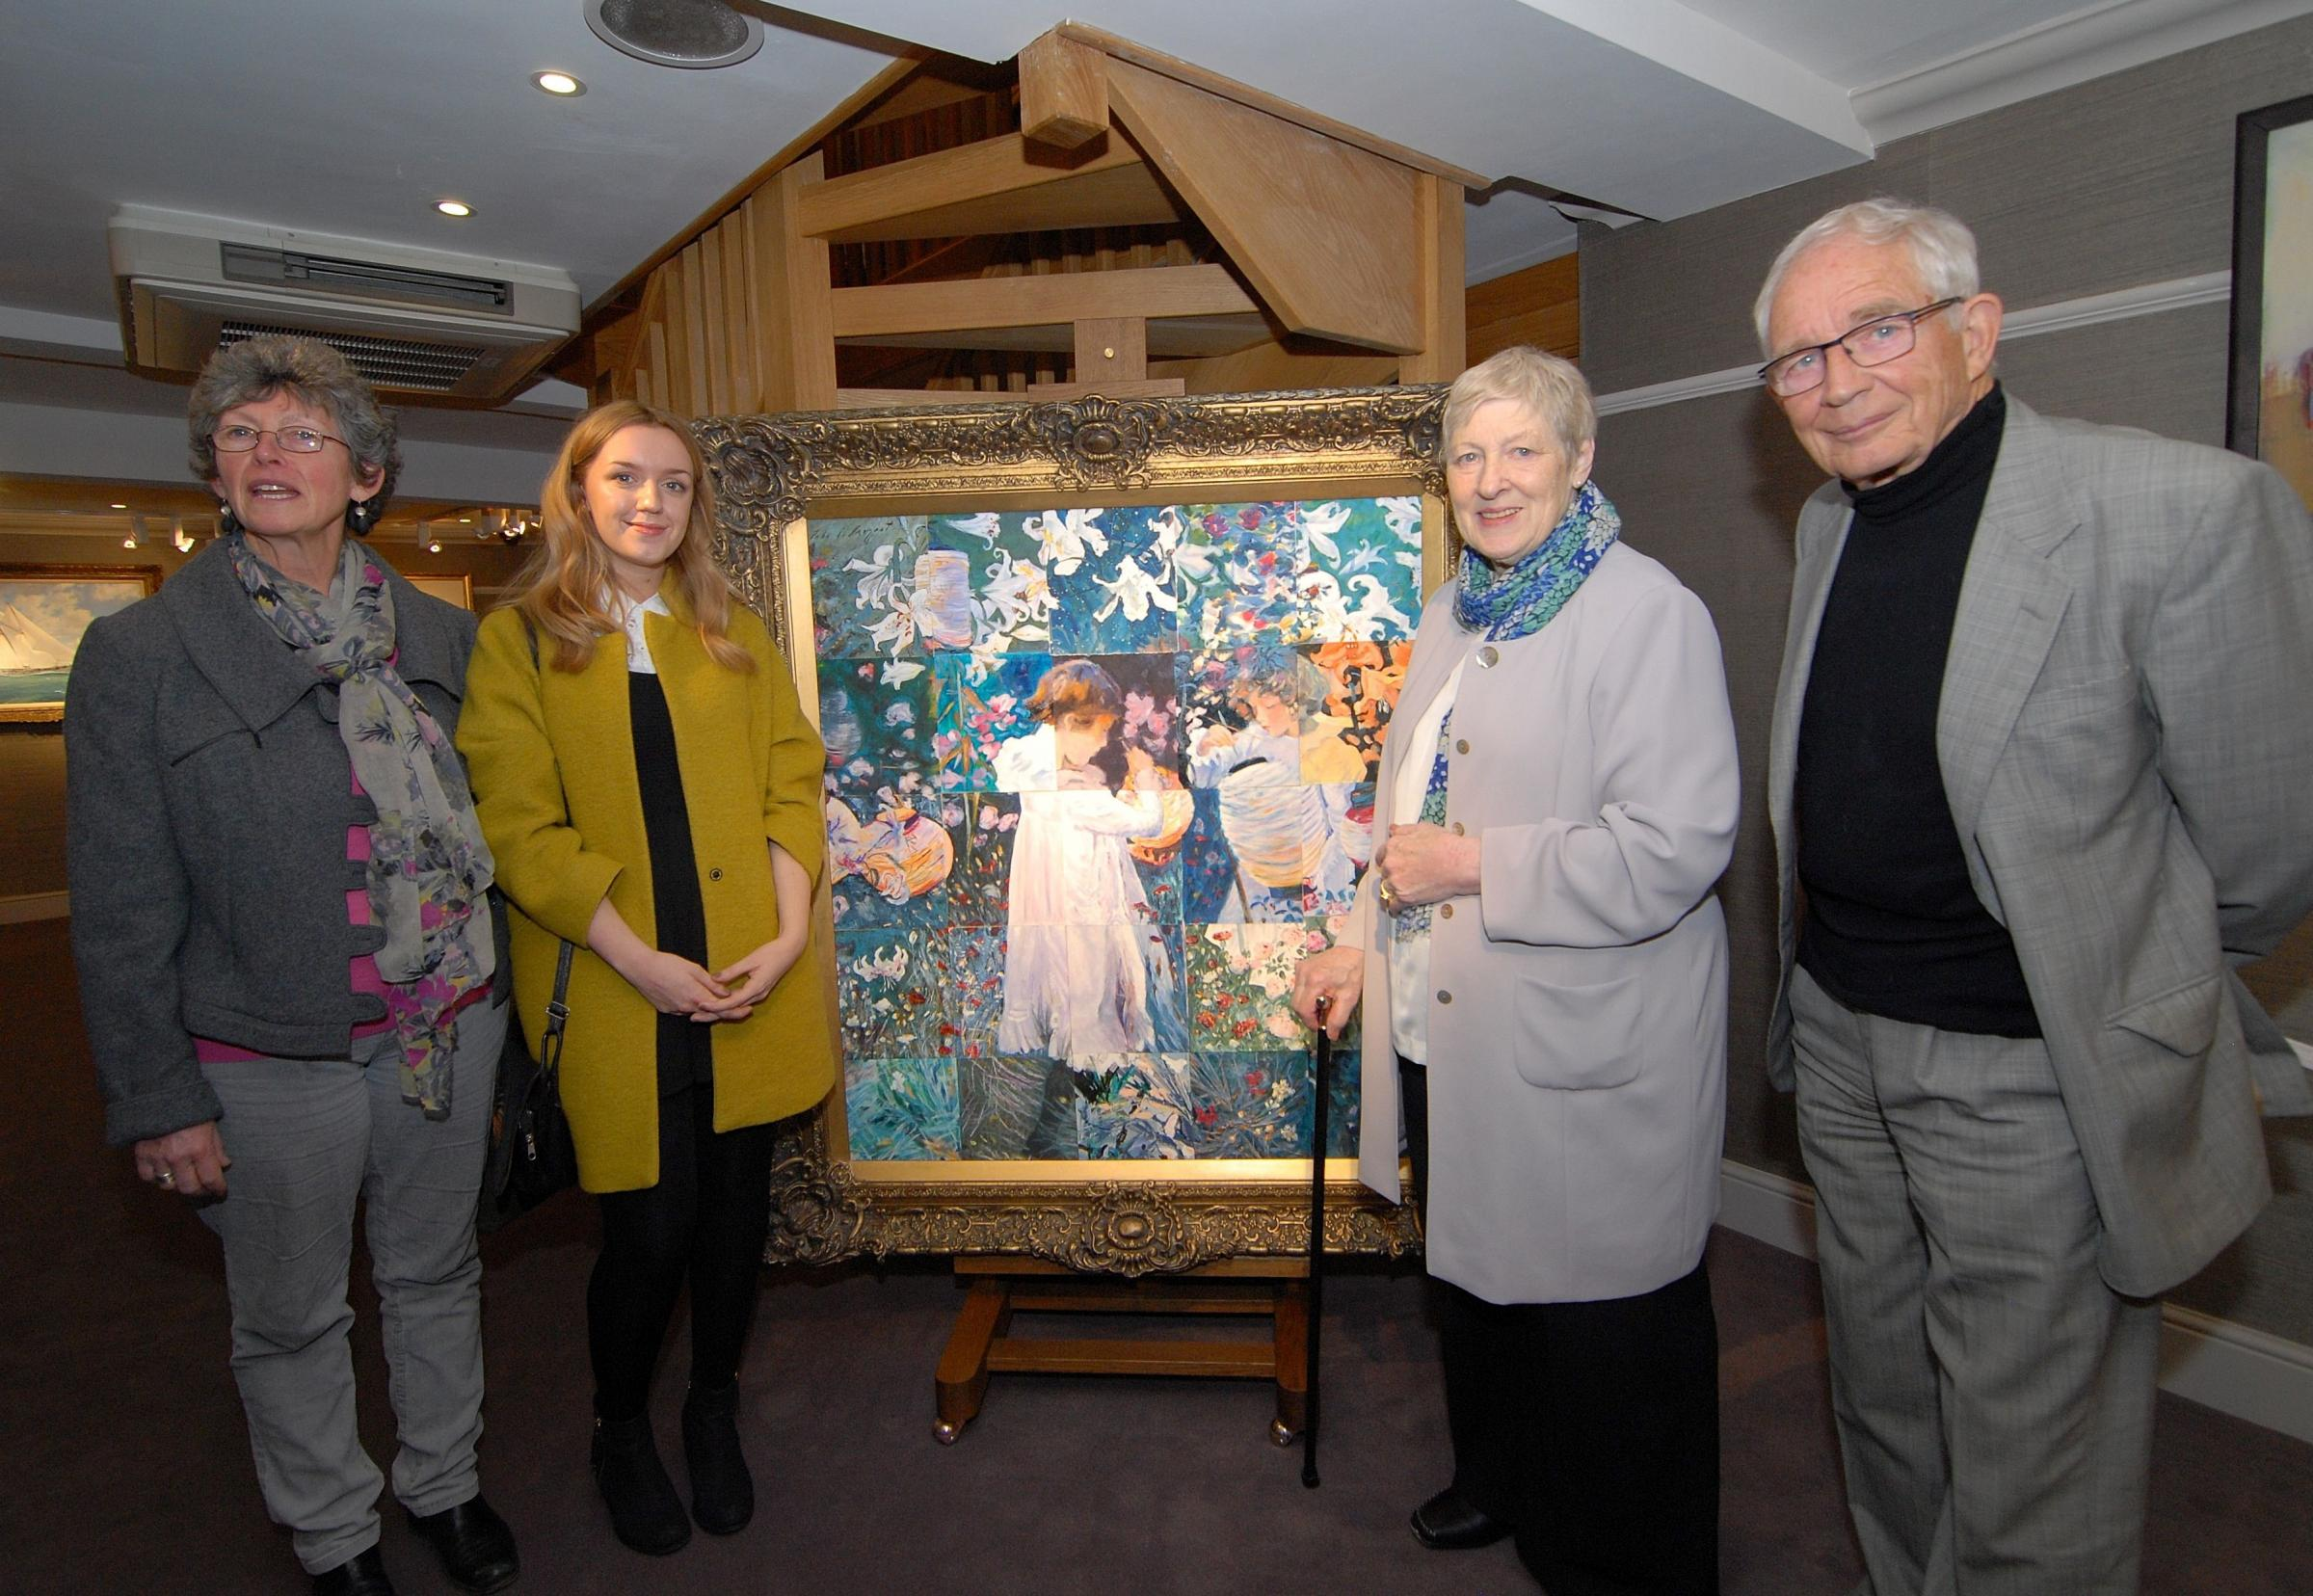 1514567901. 08/04/14. Launch of the 2014 Broadway Arts Festival at Trinity House Gallery in Broadway. Left to right - painter Arabella Kiszley, bursary student Chloe Williams, deputy festival director Sonia Woolven and trustee chairman John Noot with the